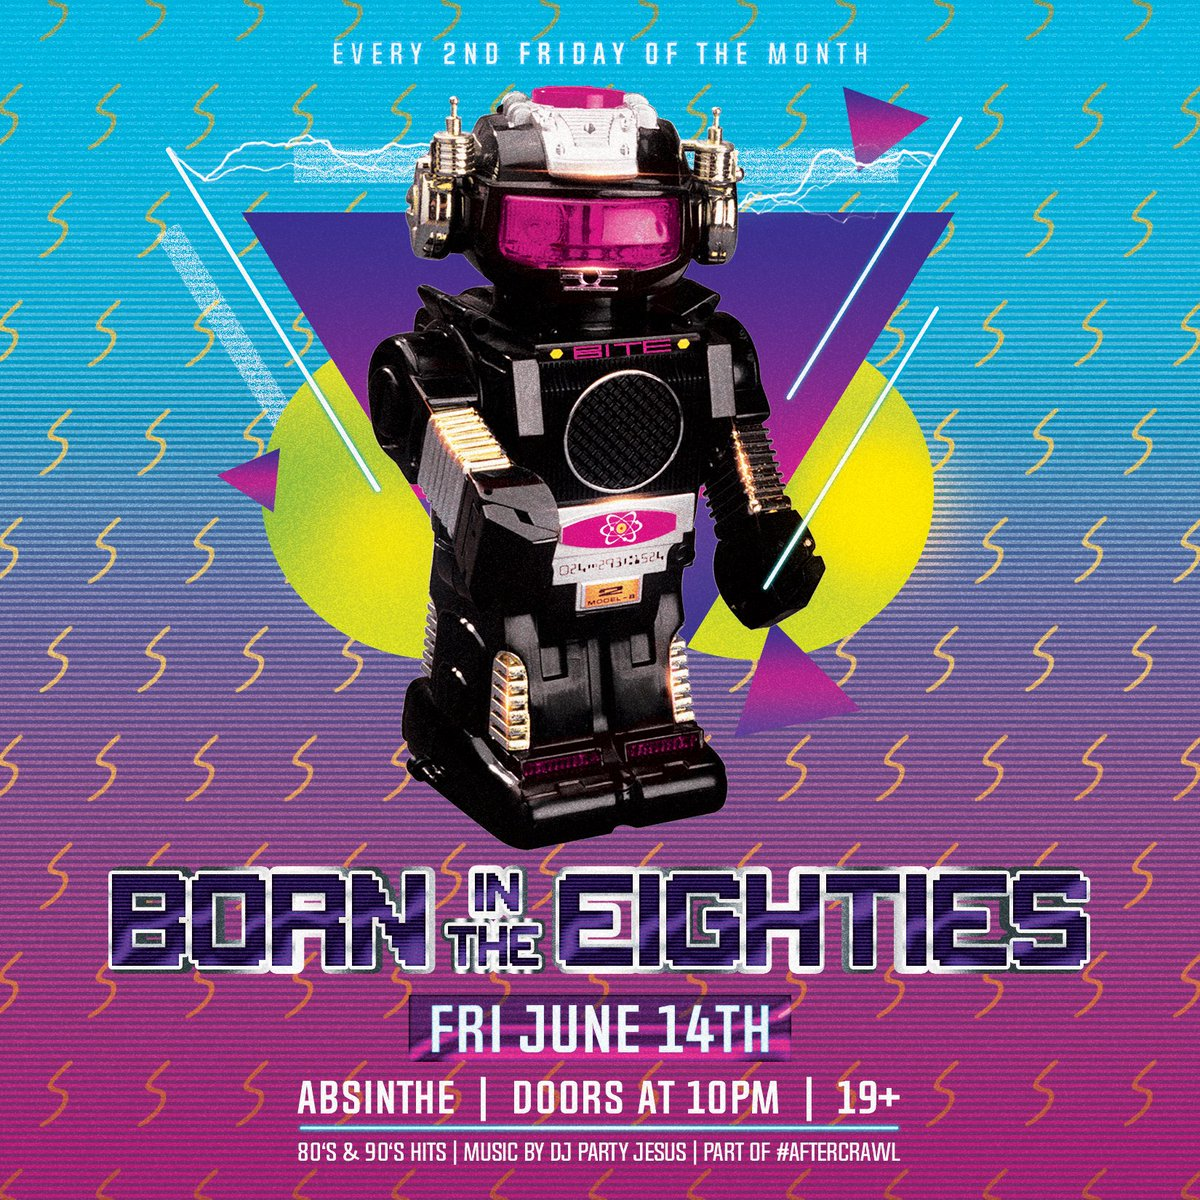 FRIDAY! Hop into the wayback playback machine and join us for our monthly #aftercrawl with your fave 80's and 90's cover band BORN IN THE EIGHTIES. Music and visuals as always by DJ PARTY JESUS. Don't stop believin' #hamont